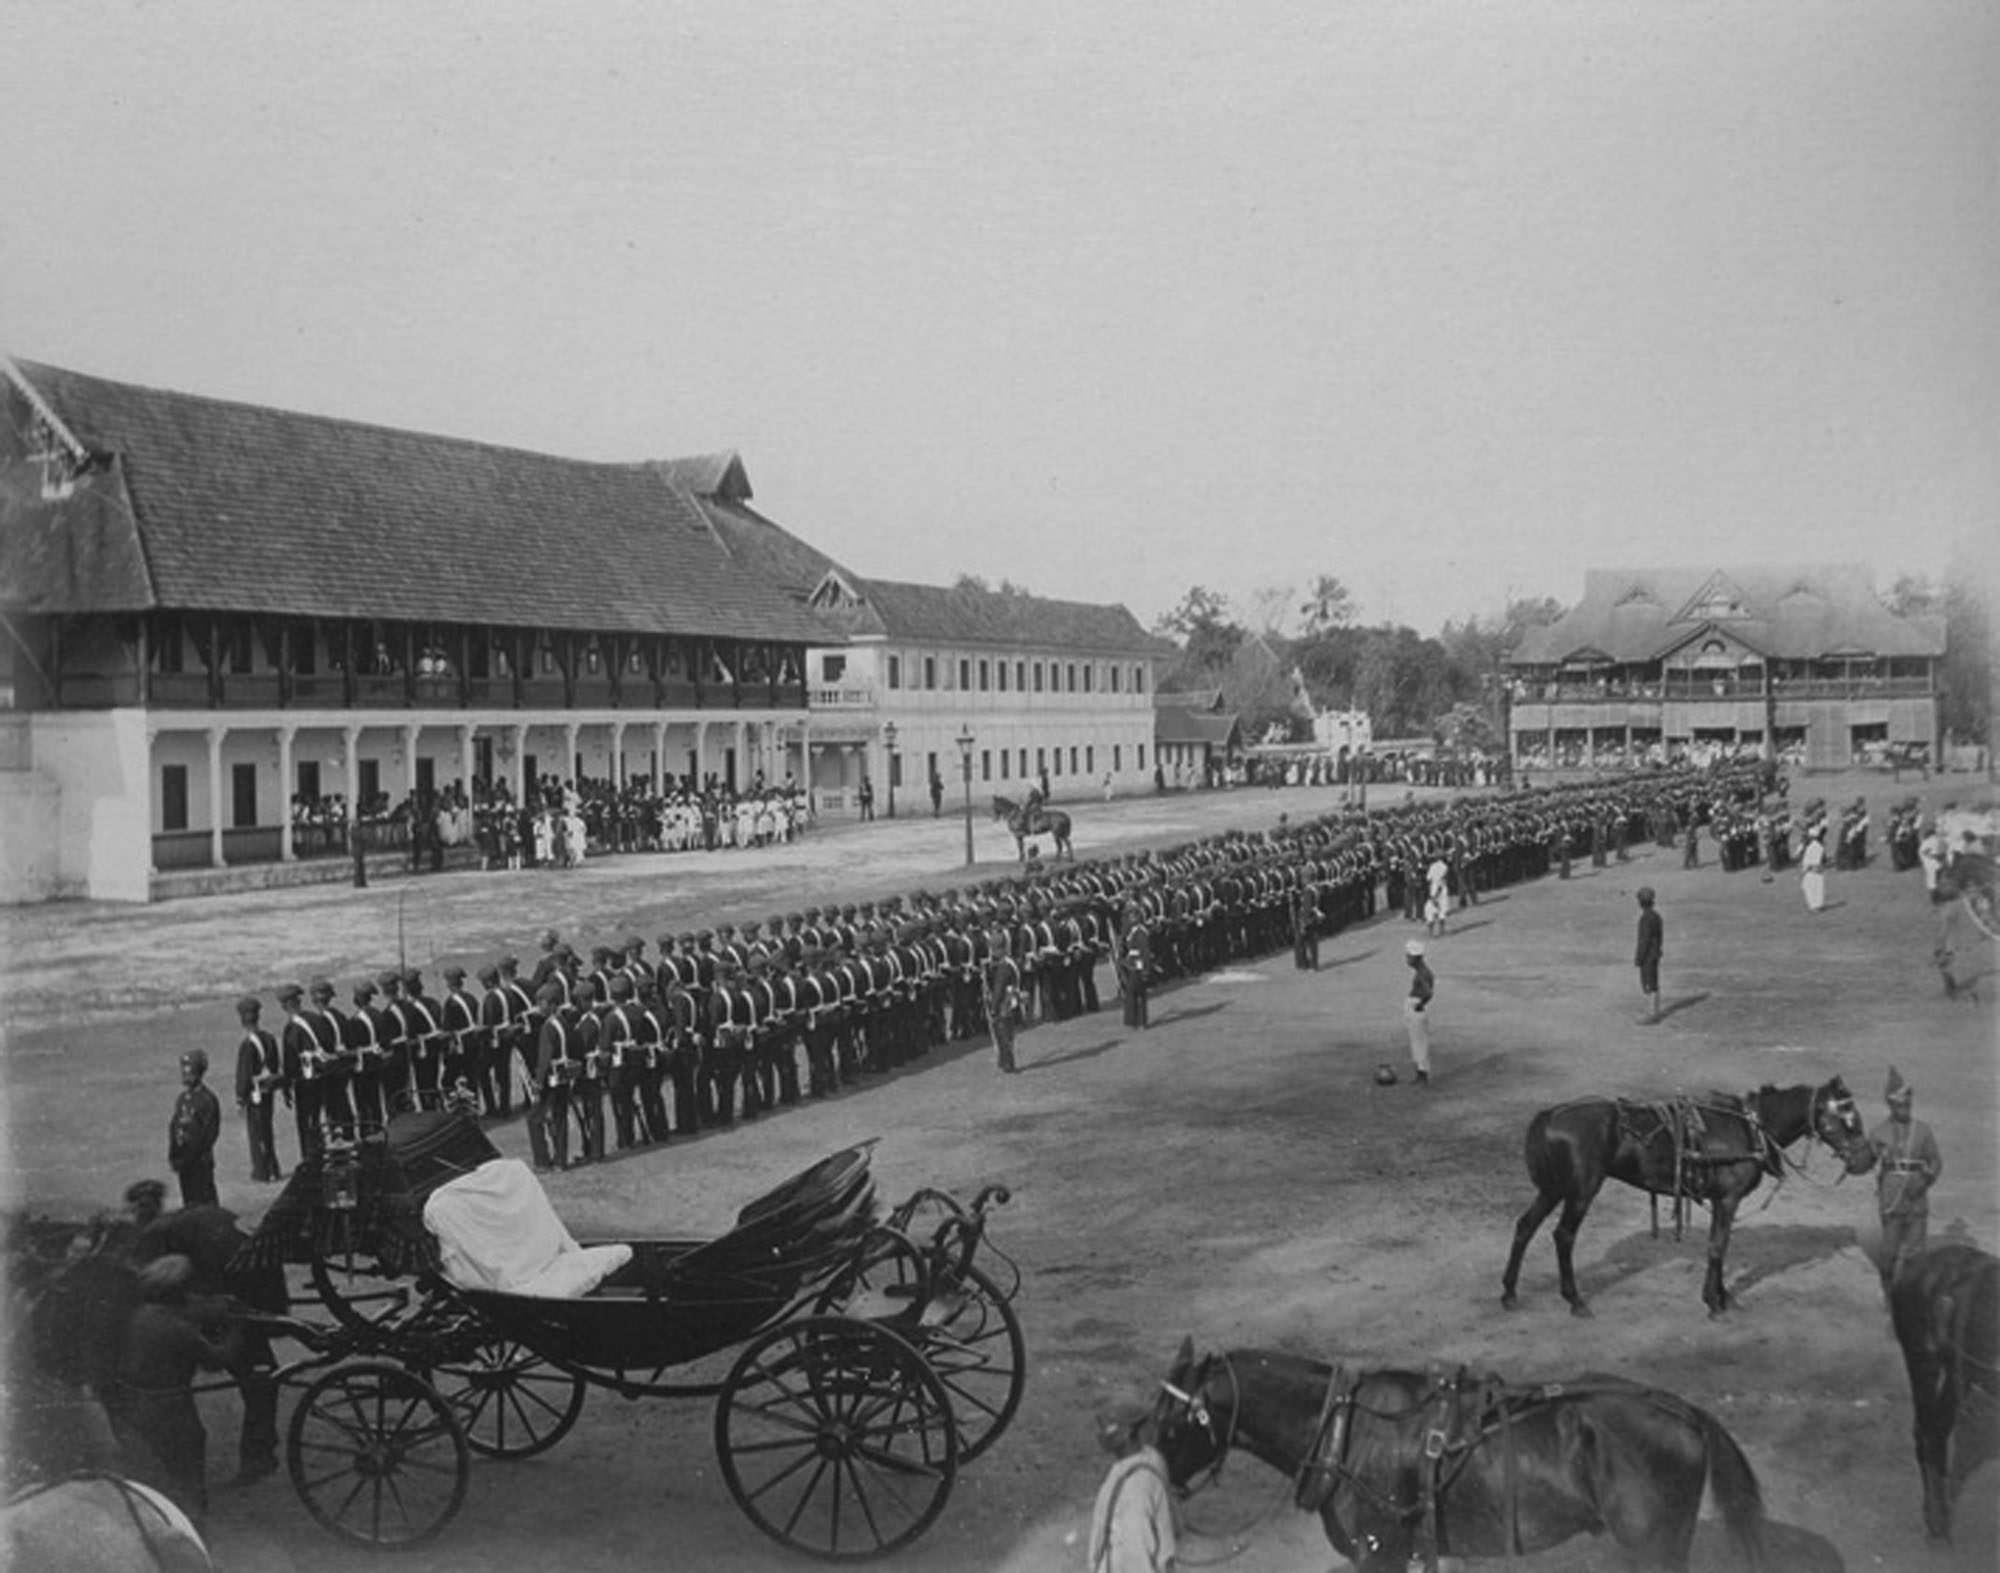 http://upload.wikimedia.org/wikipedia/commons/e/e4/Adoption_Durbar%2C_Trivandrum.jpg